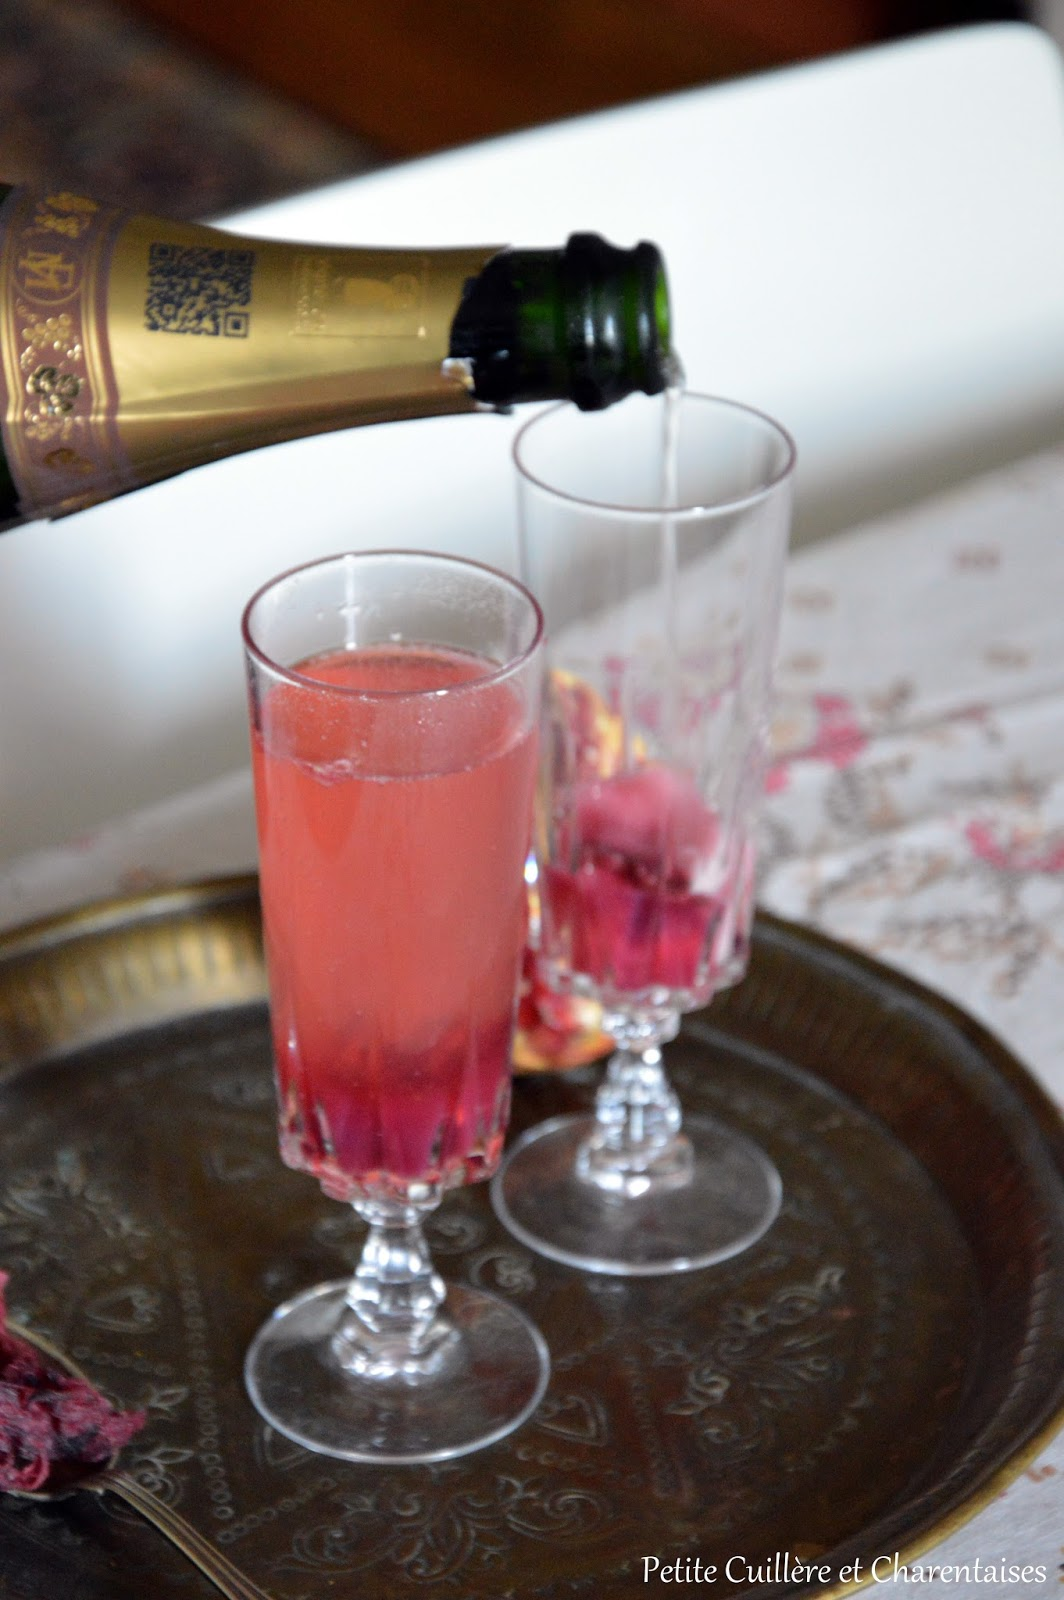 Petite cuill re et charentaises cocktail champagne for Cocktail hibiscus